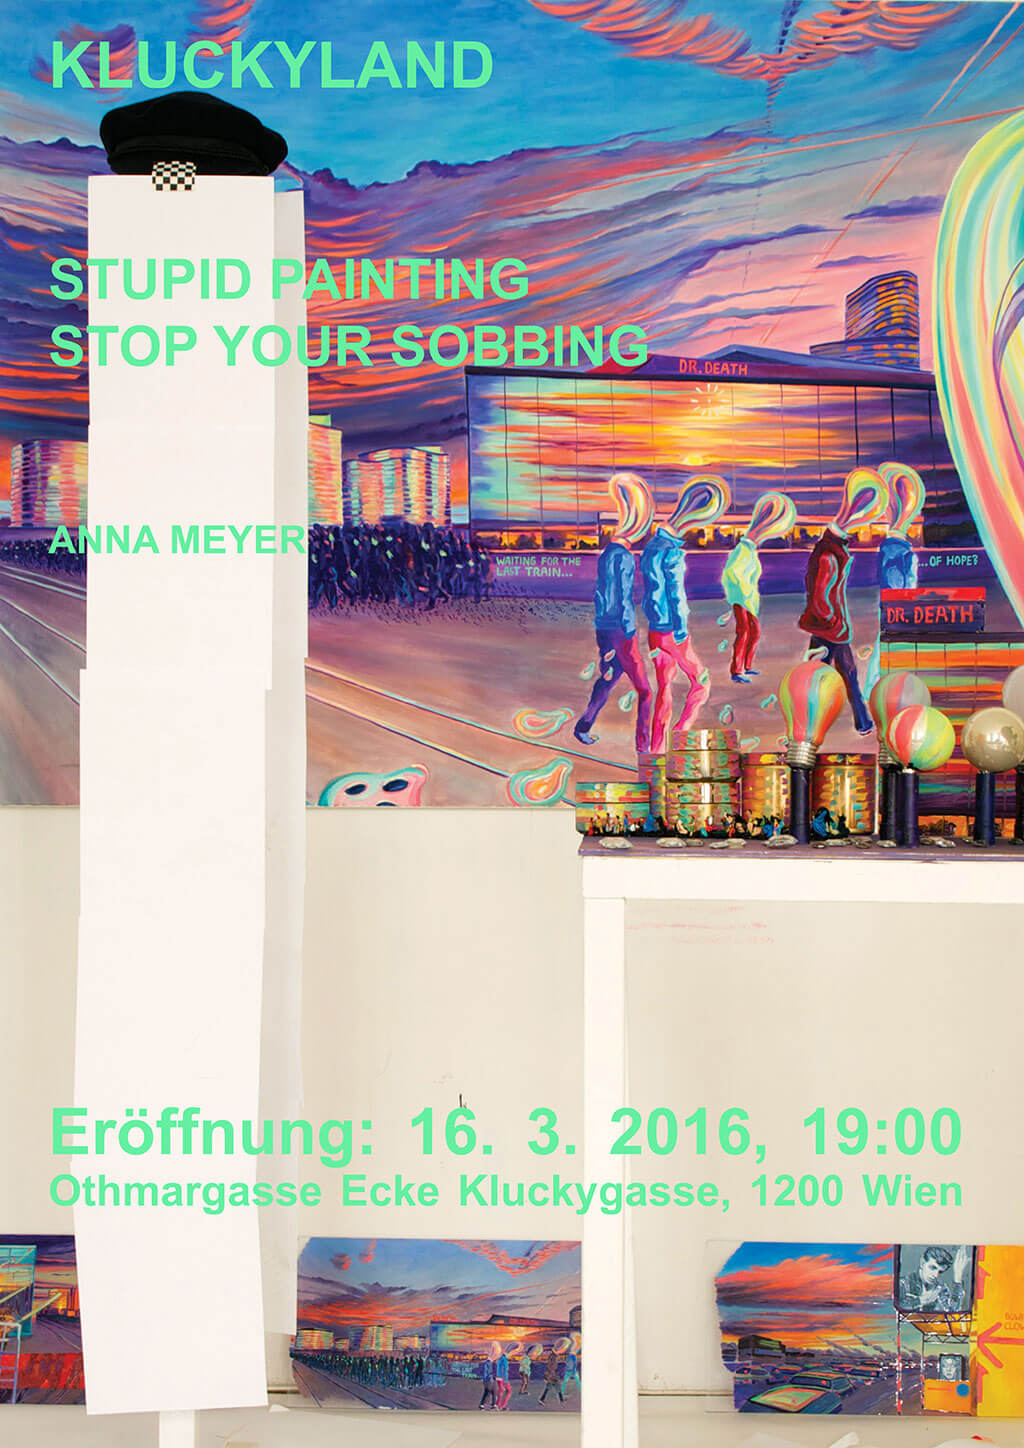 Poster Kluckyland: Anna Meyer: Stupid Painting Stop Your Sobbing